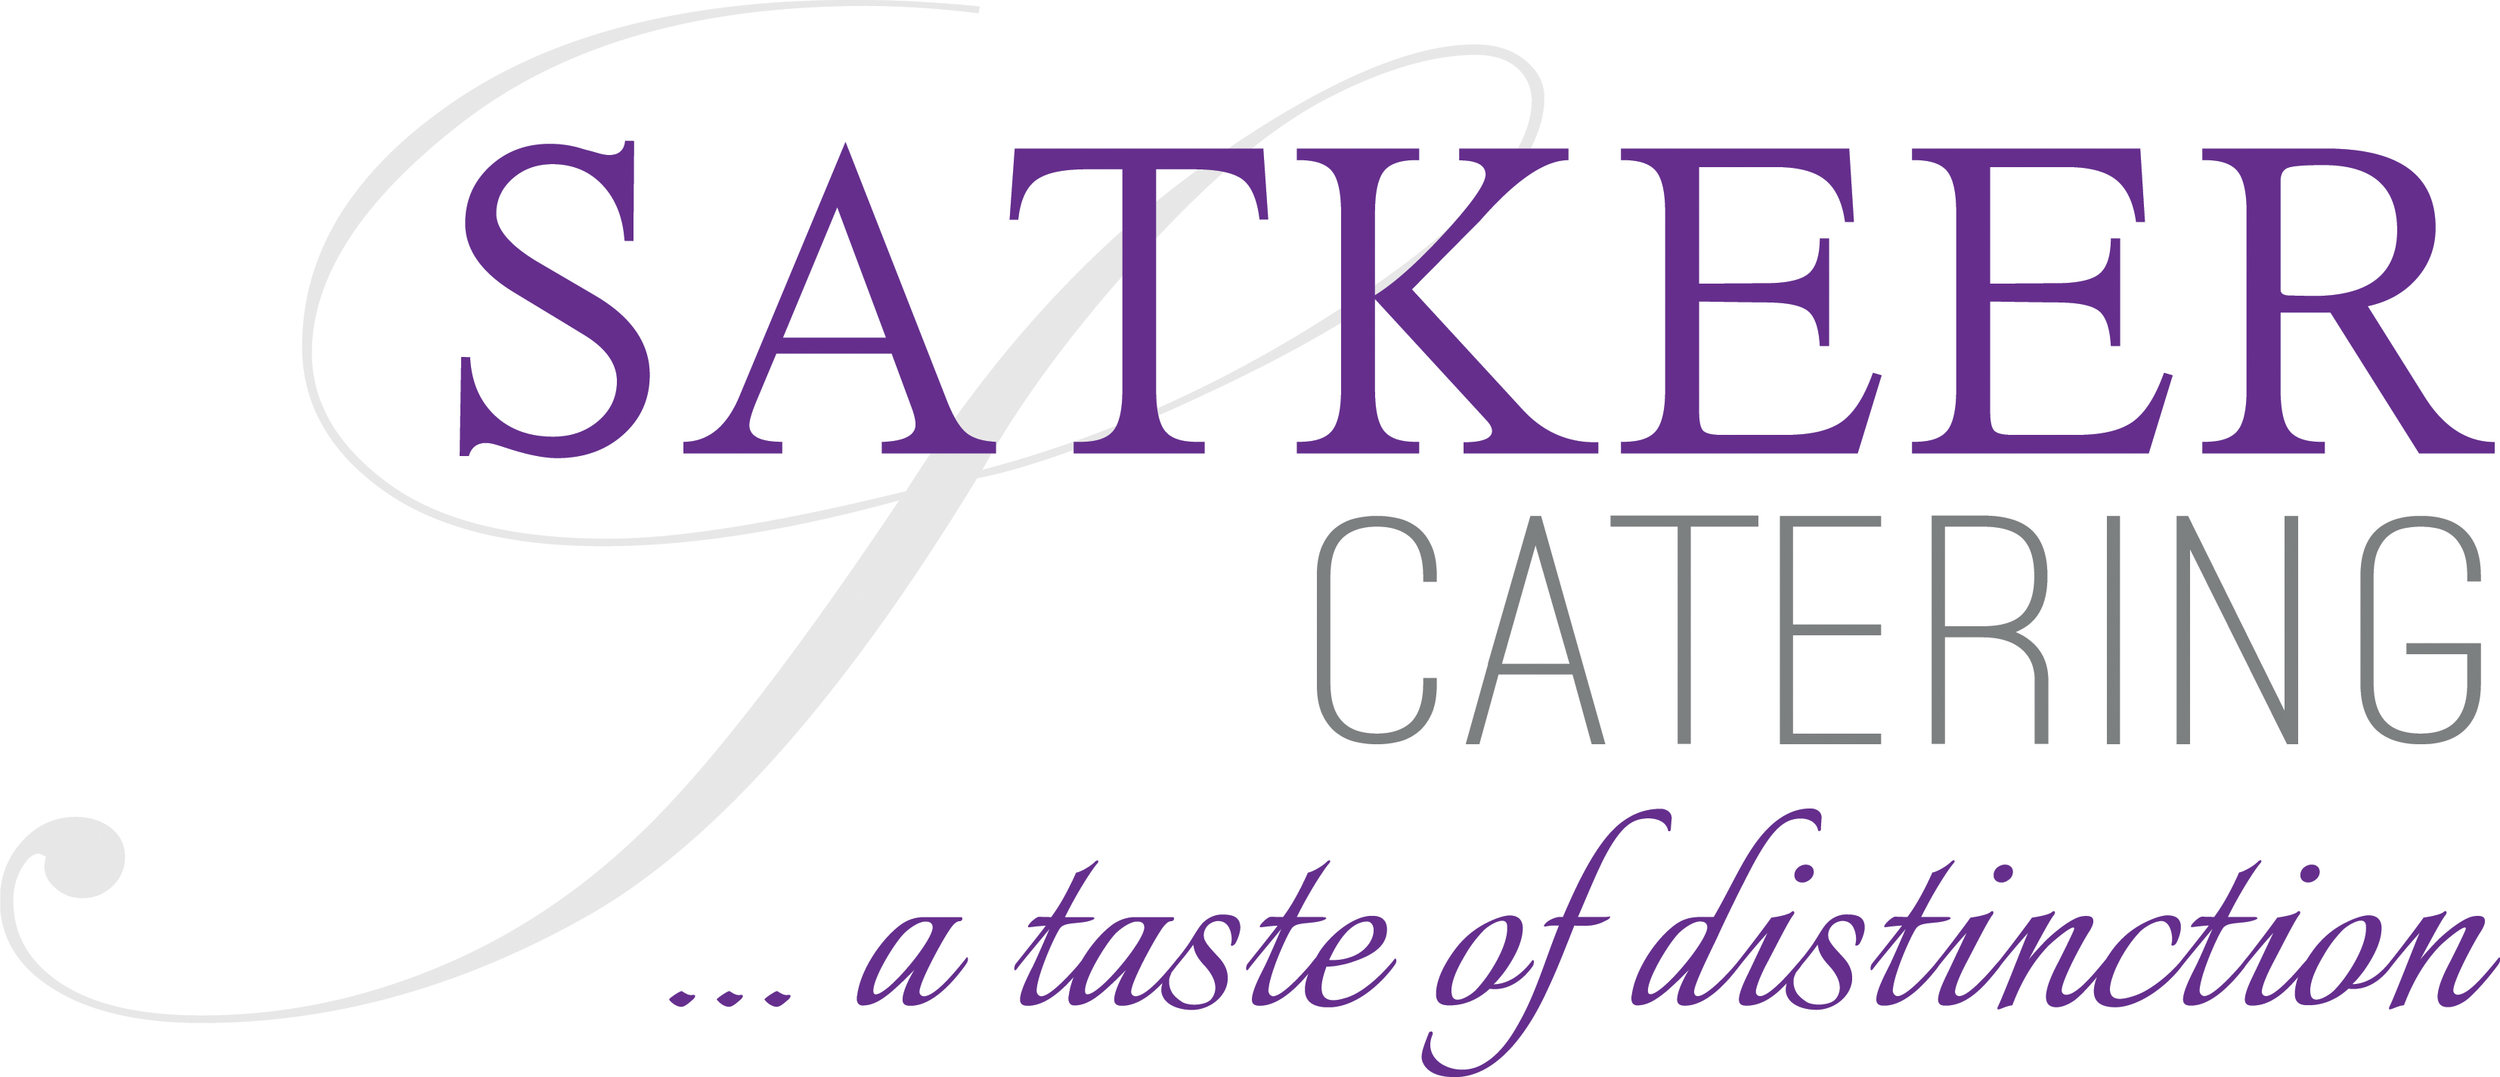 Satkeer Catering Logo Outlined.jpg